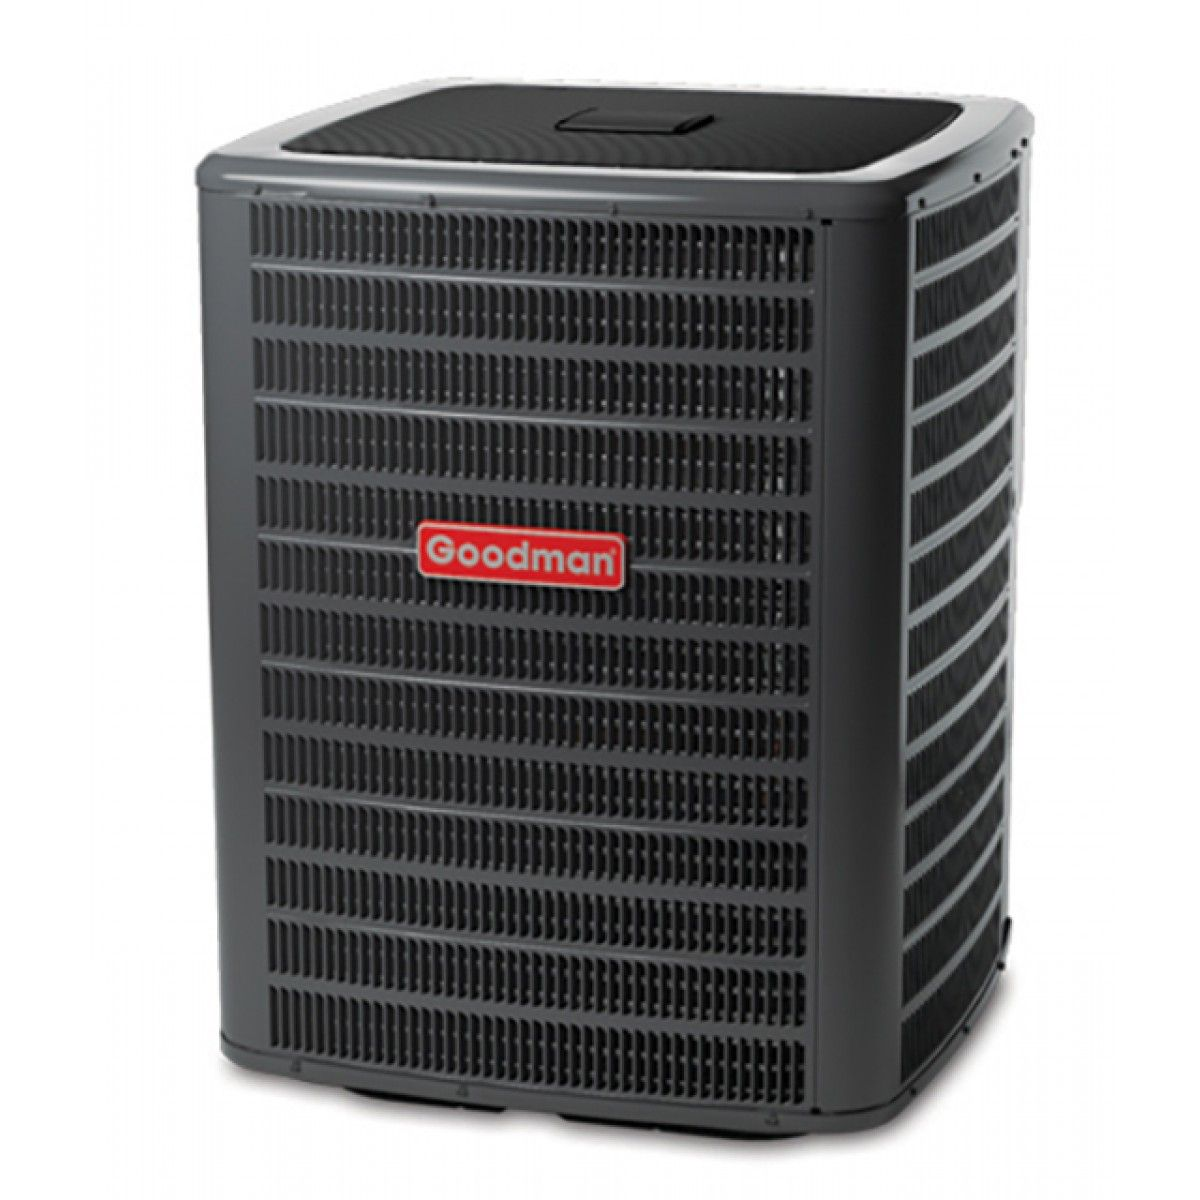 Goodman 3 0 Ton 18 Seer Heat Pump Two Stage Variable Speed